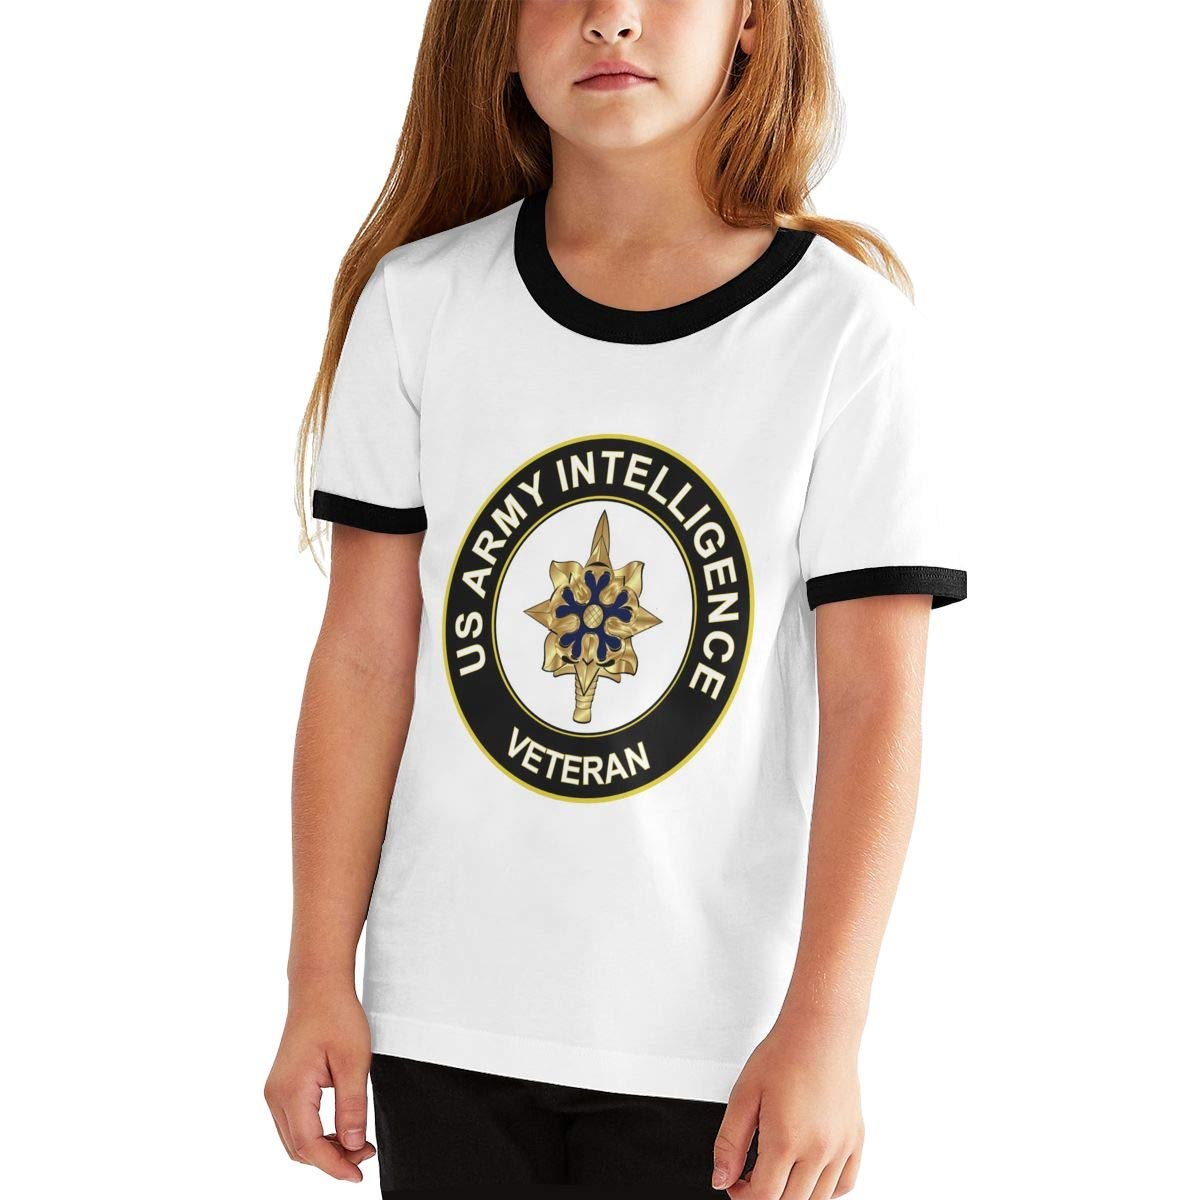 Kids Or Little Boys and Girls Manlee US Army Intelligence Unisex Childrens Short Sleeve T-Shirt